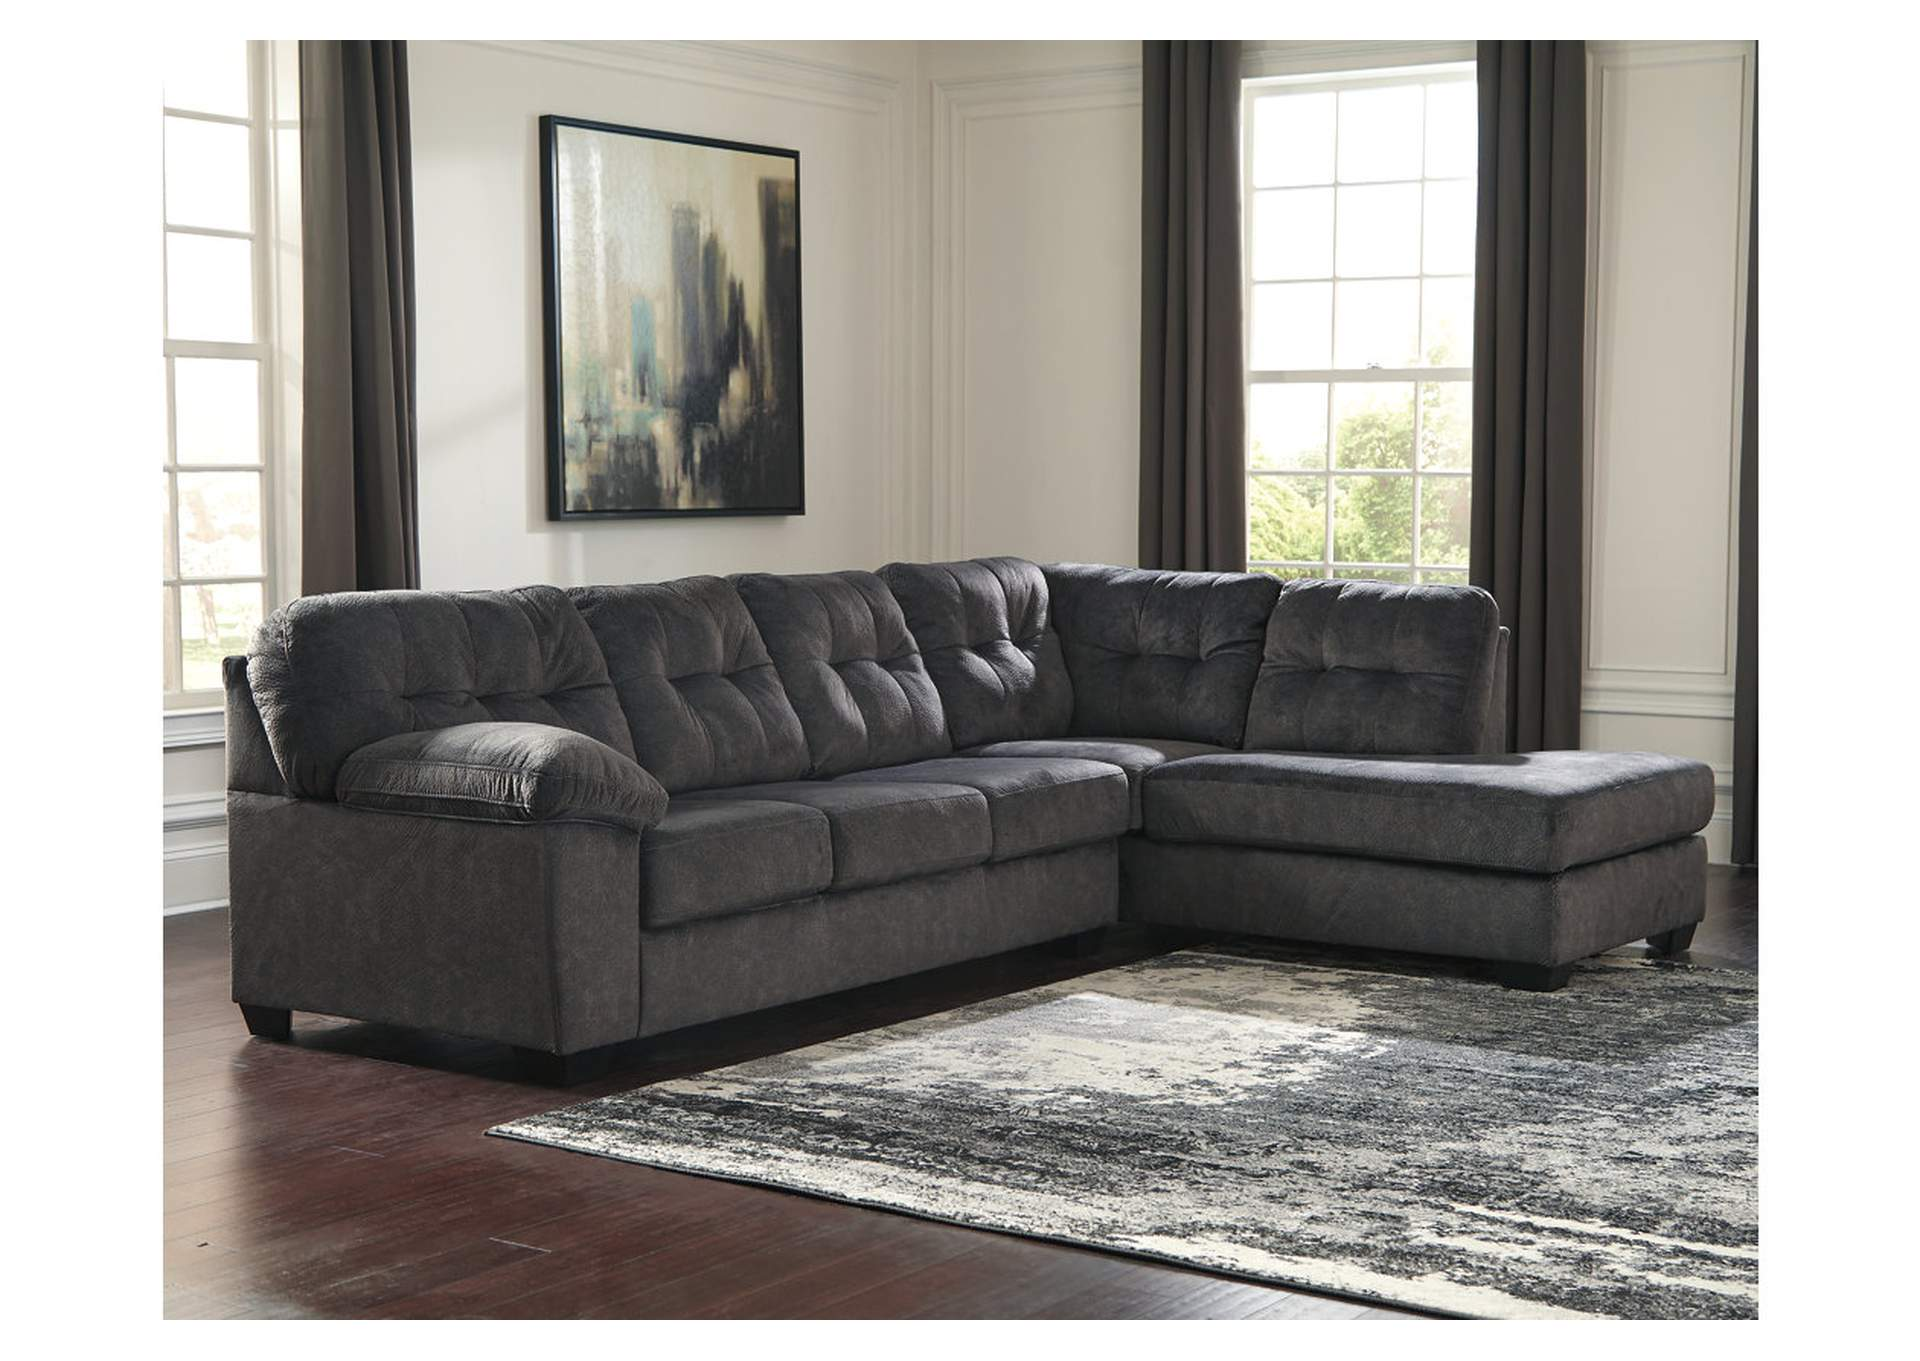 Accrington Granite RAF Chaise End Sectional,Signature Design By Ashley